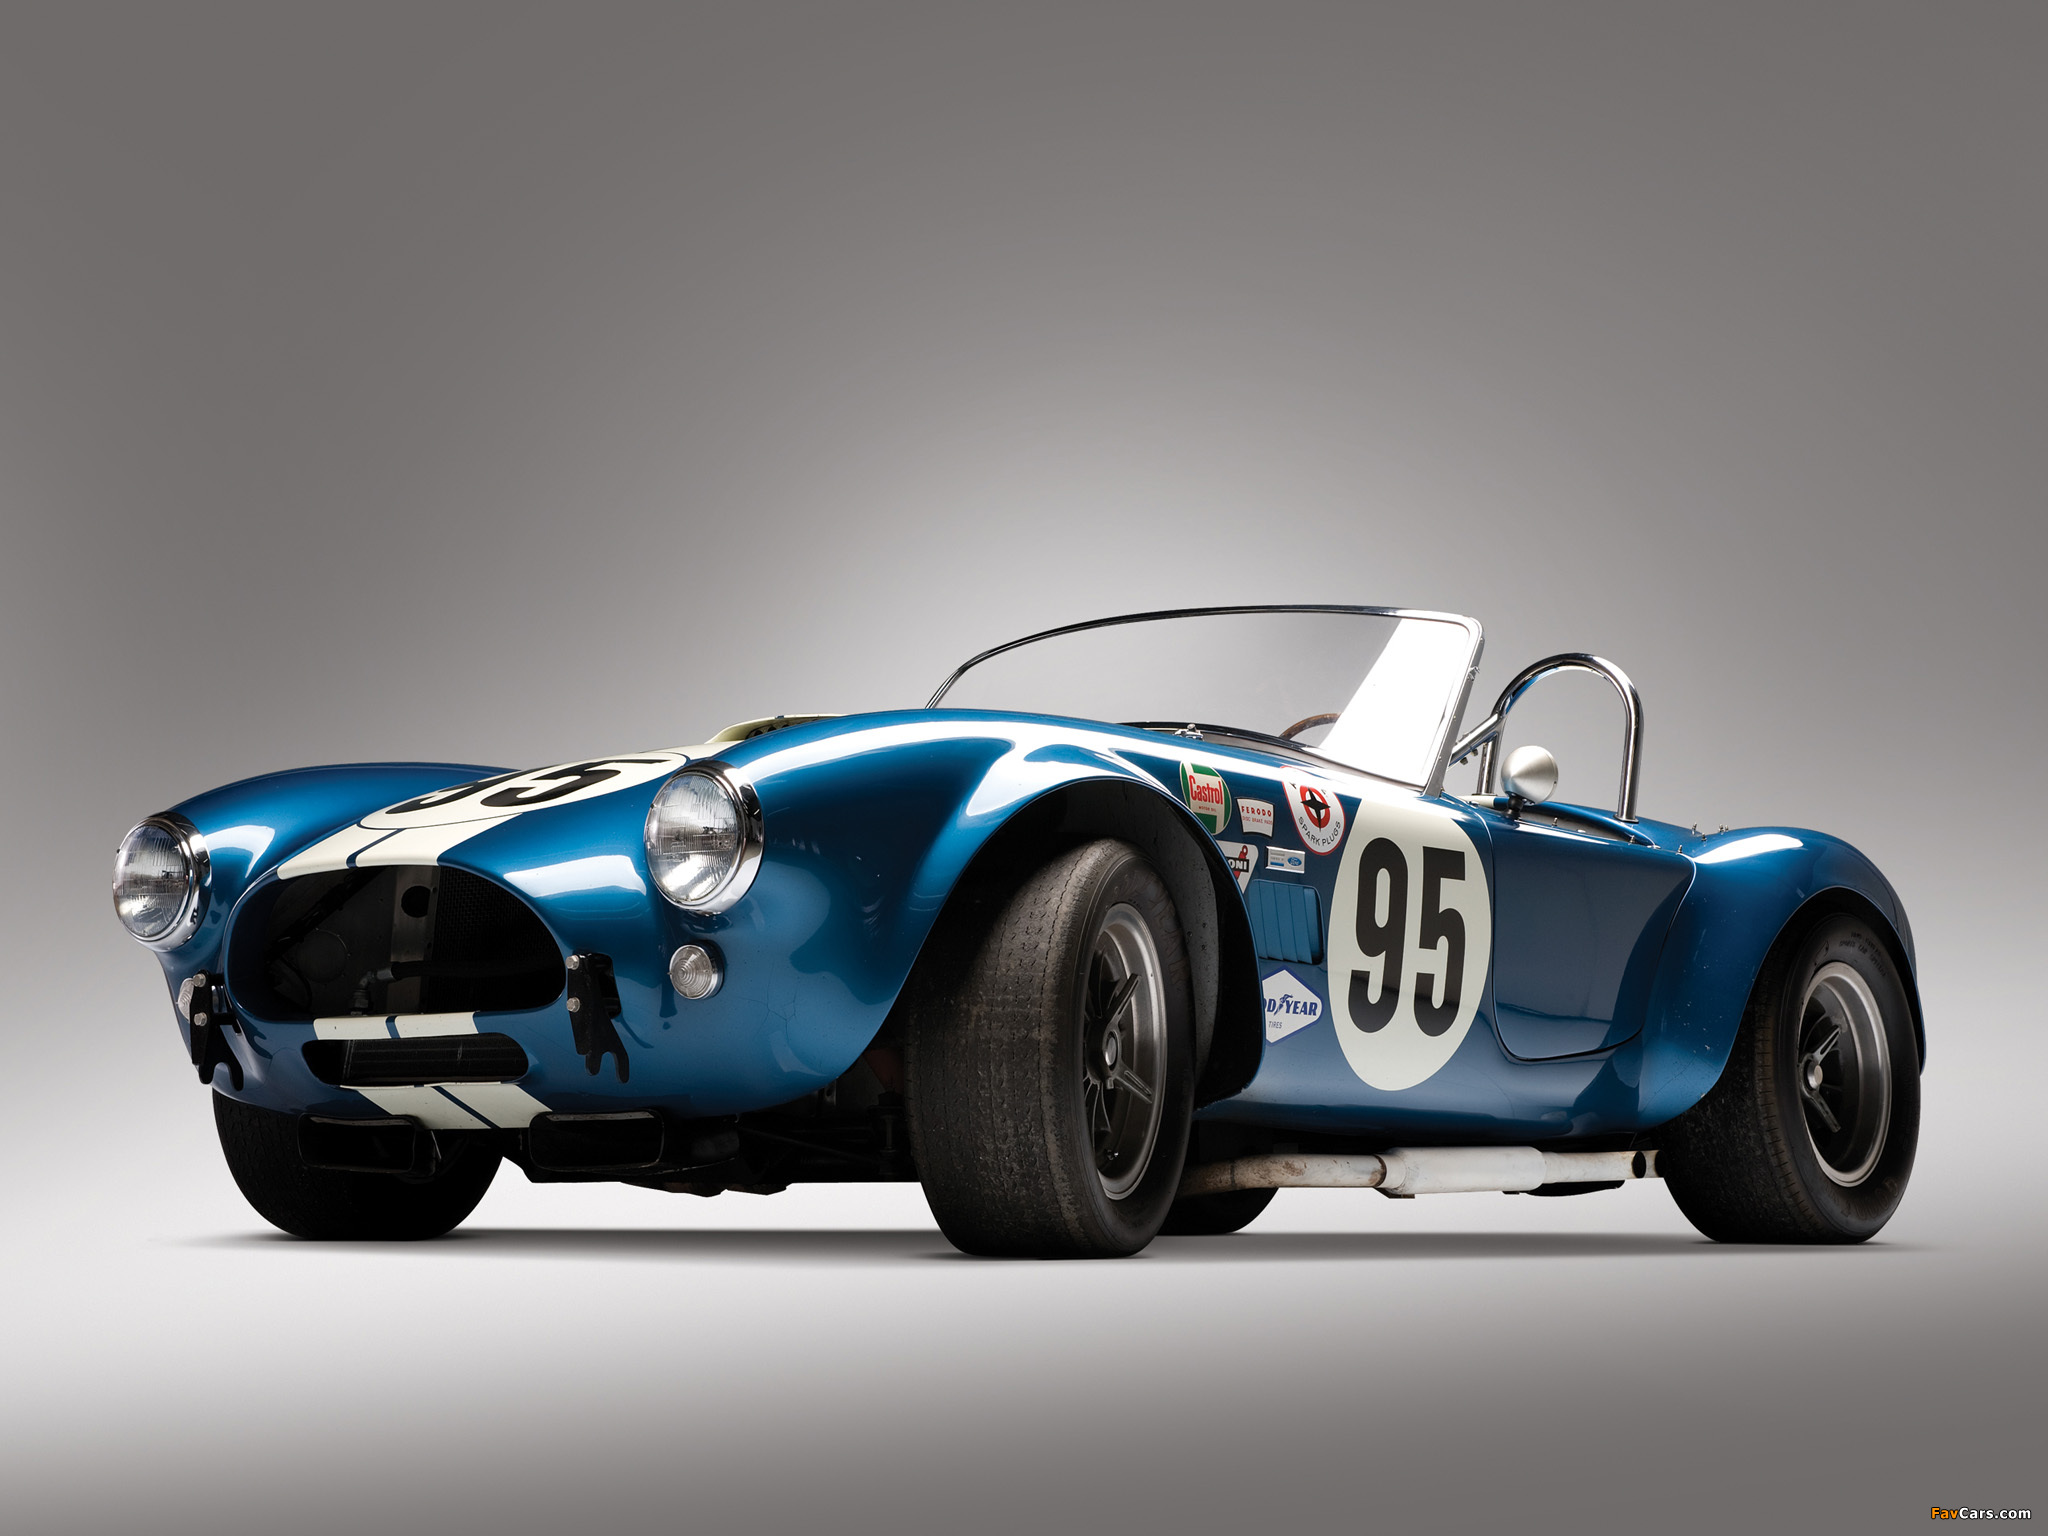 Shelby cobra usrrc roadster 1964 images 2048 x 1536